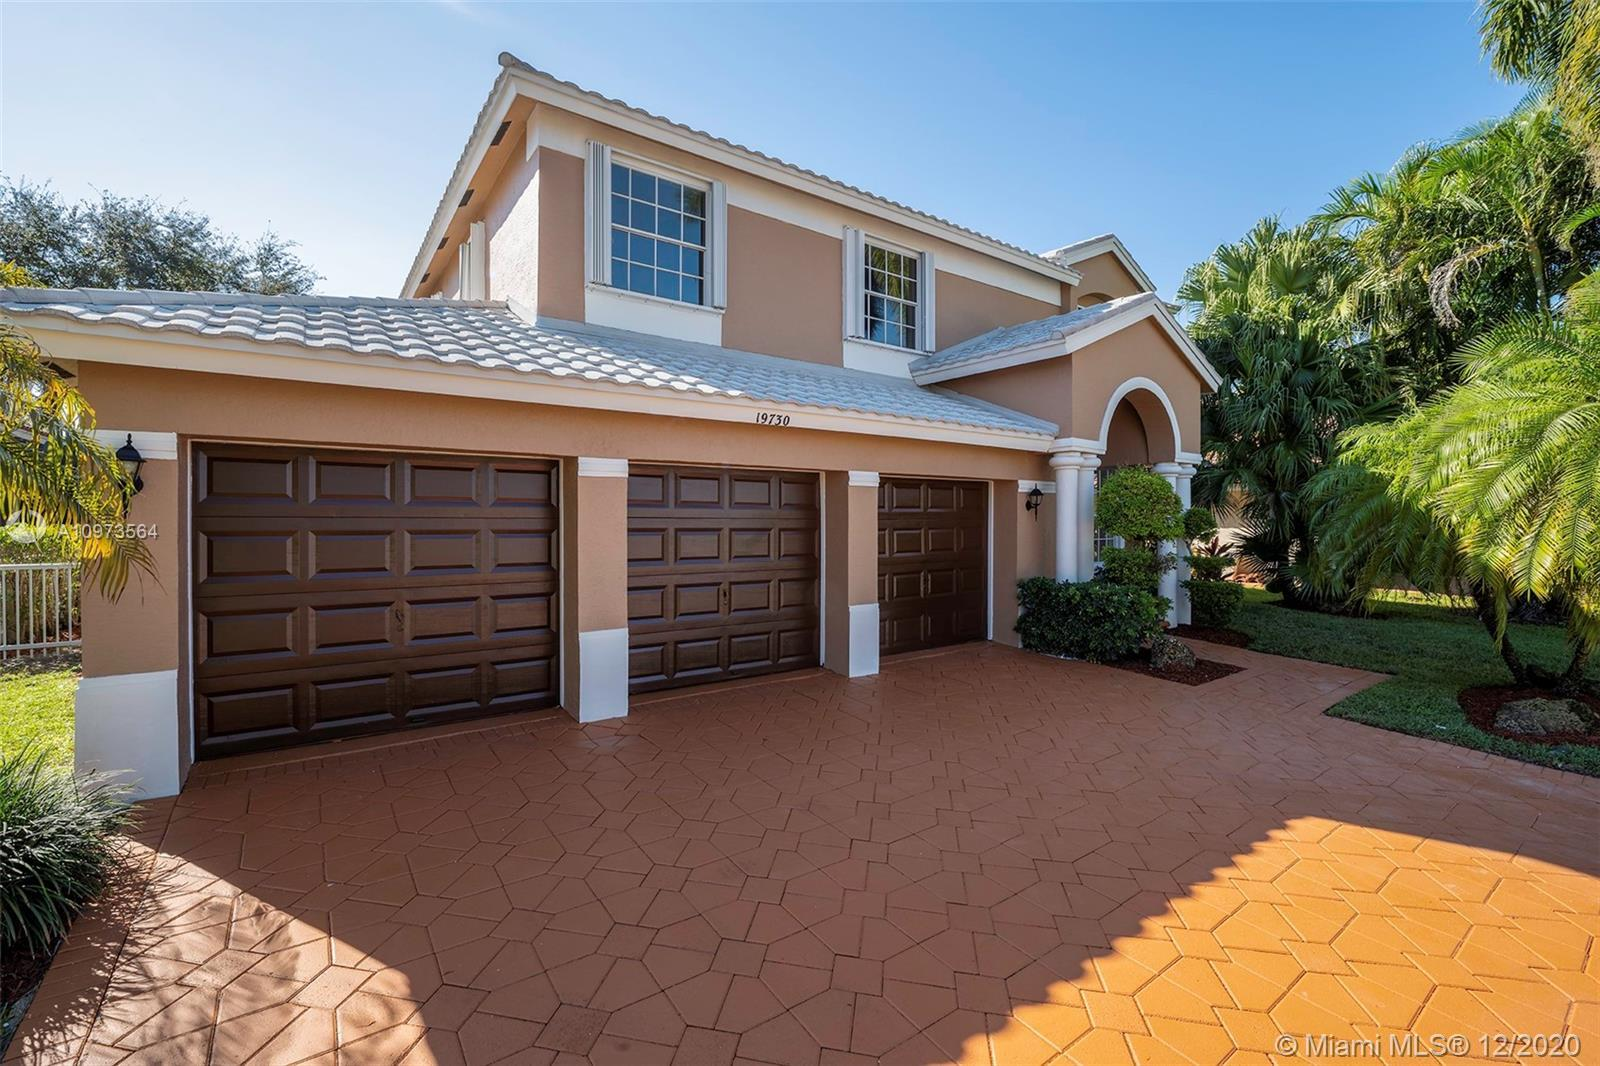 This home has it all. Move in ready 4-bedroom,3-bathroom in the highly sought-after community of Boc